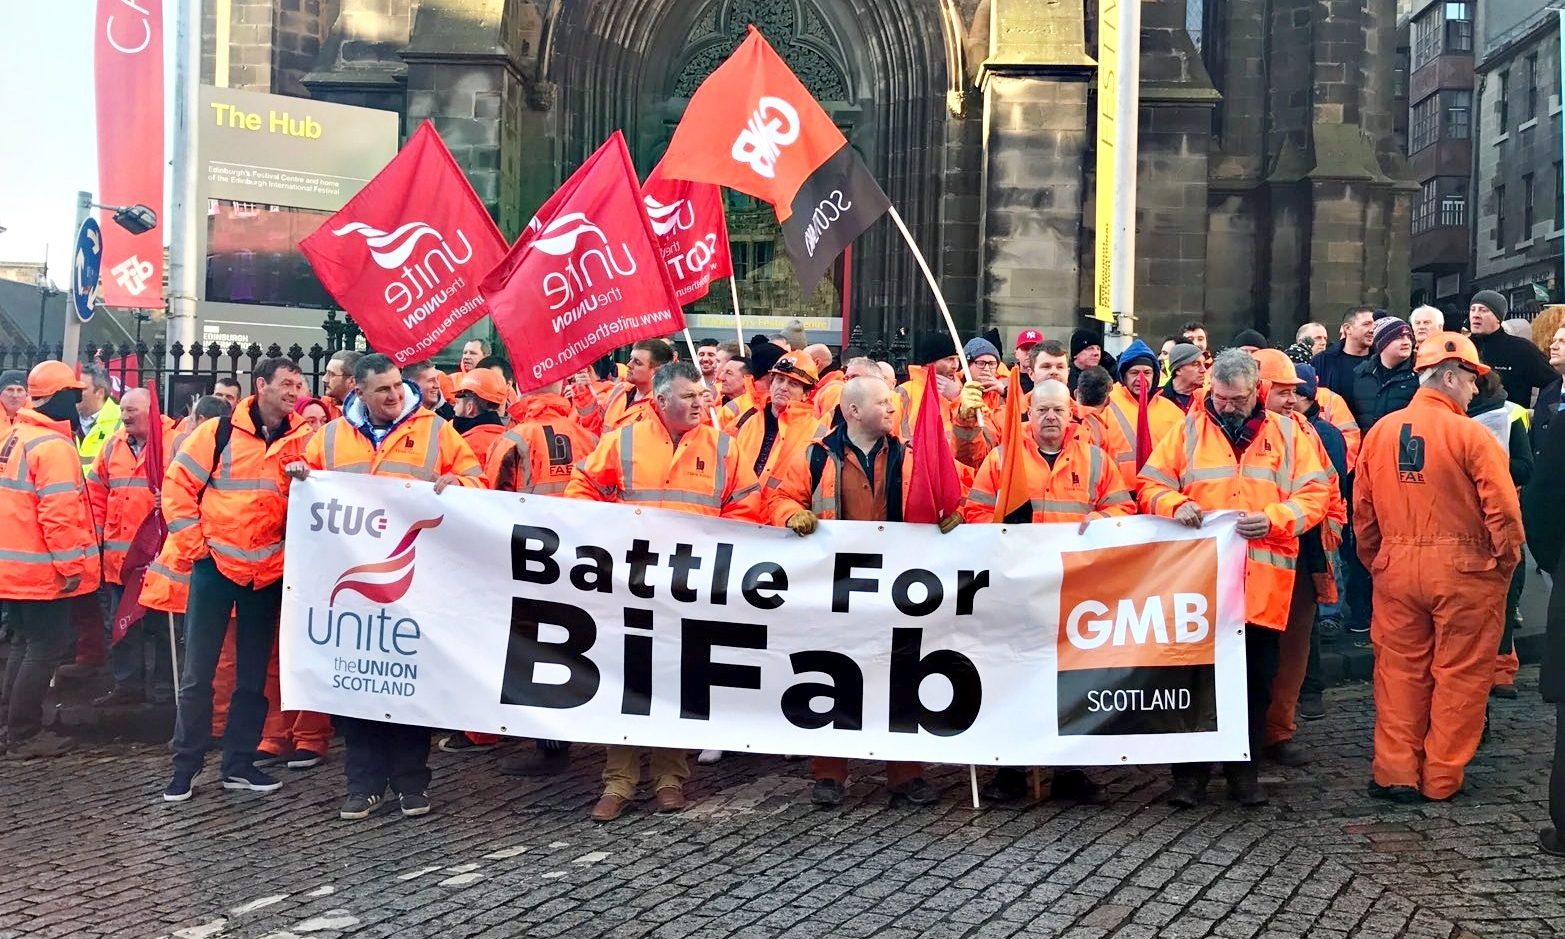 The workers assemble ahead of the march to the Scottish Parliament.